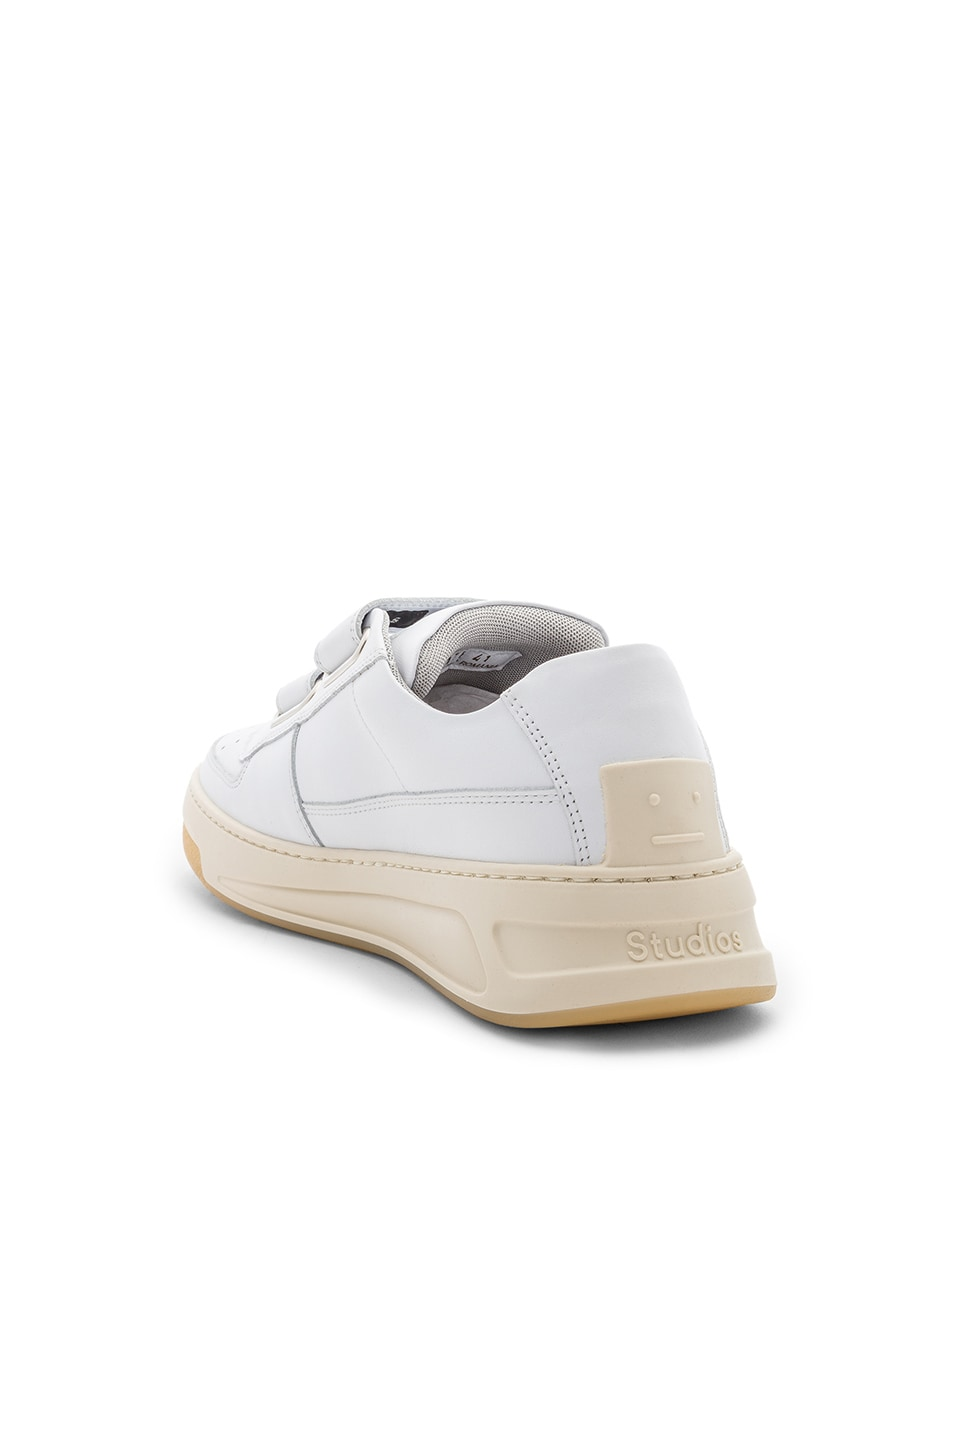 Acne Leather Pete Sneakers in . epA3jWdHb1